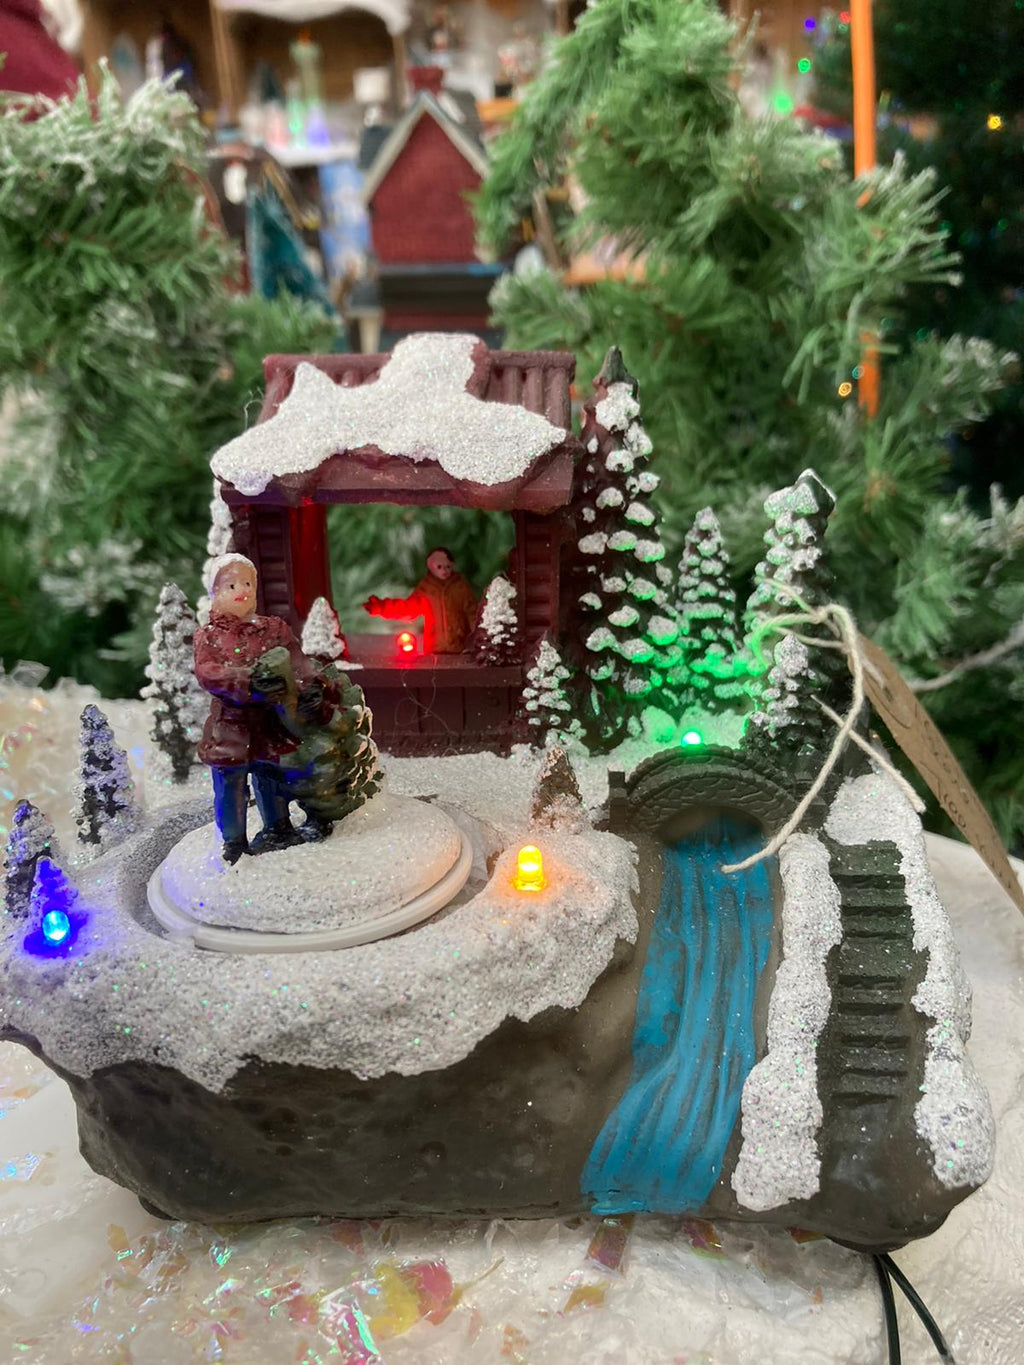 14CM BATTERY OP LIT LED VILLAGE SCENE WITH TREE SELLER